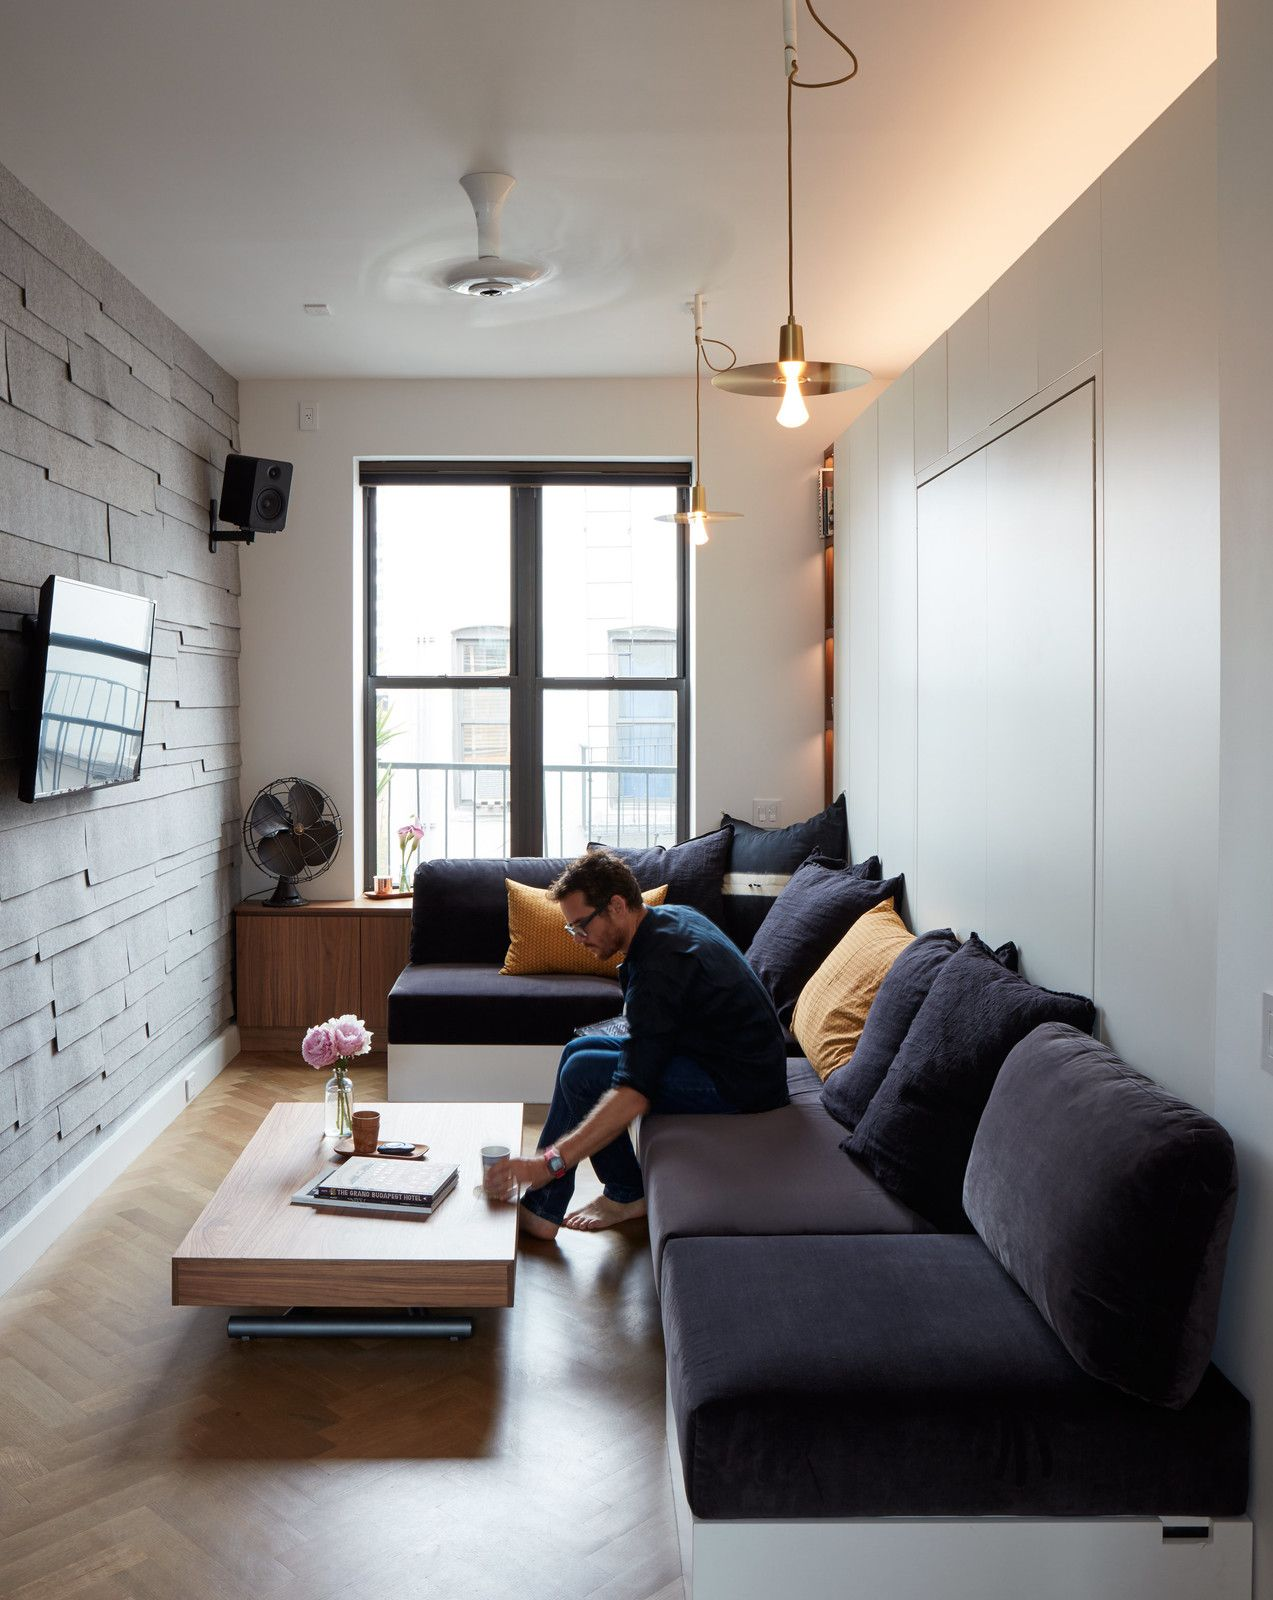 Small Space Living In A SoHo Apartment (With Images)